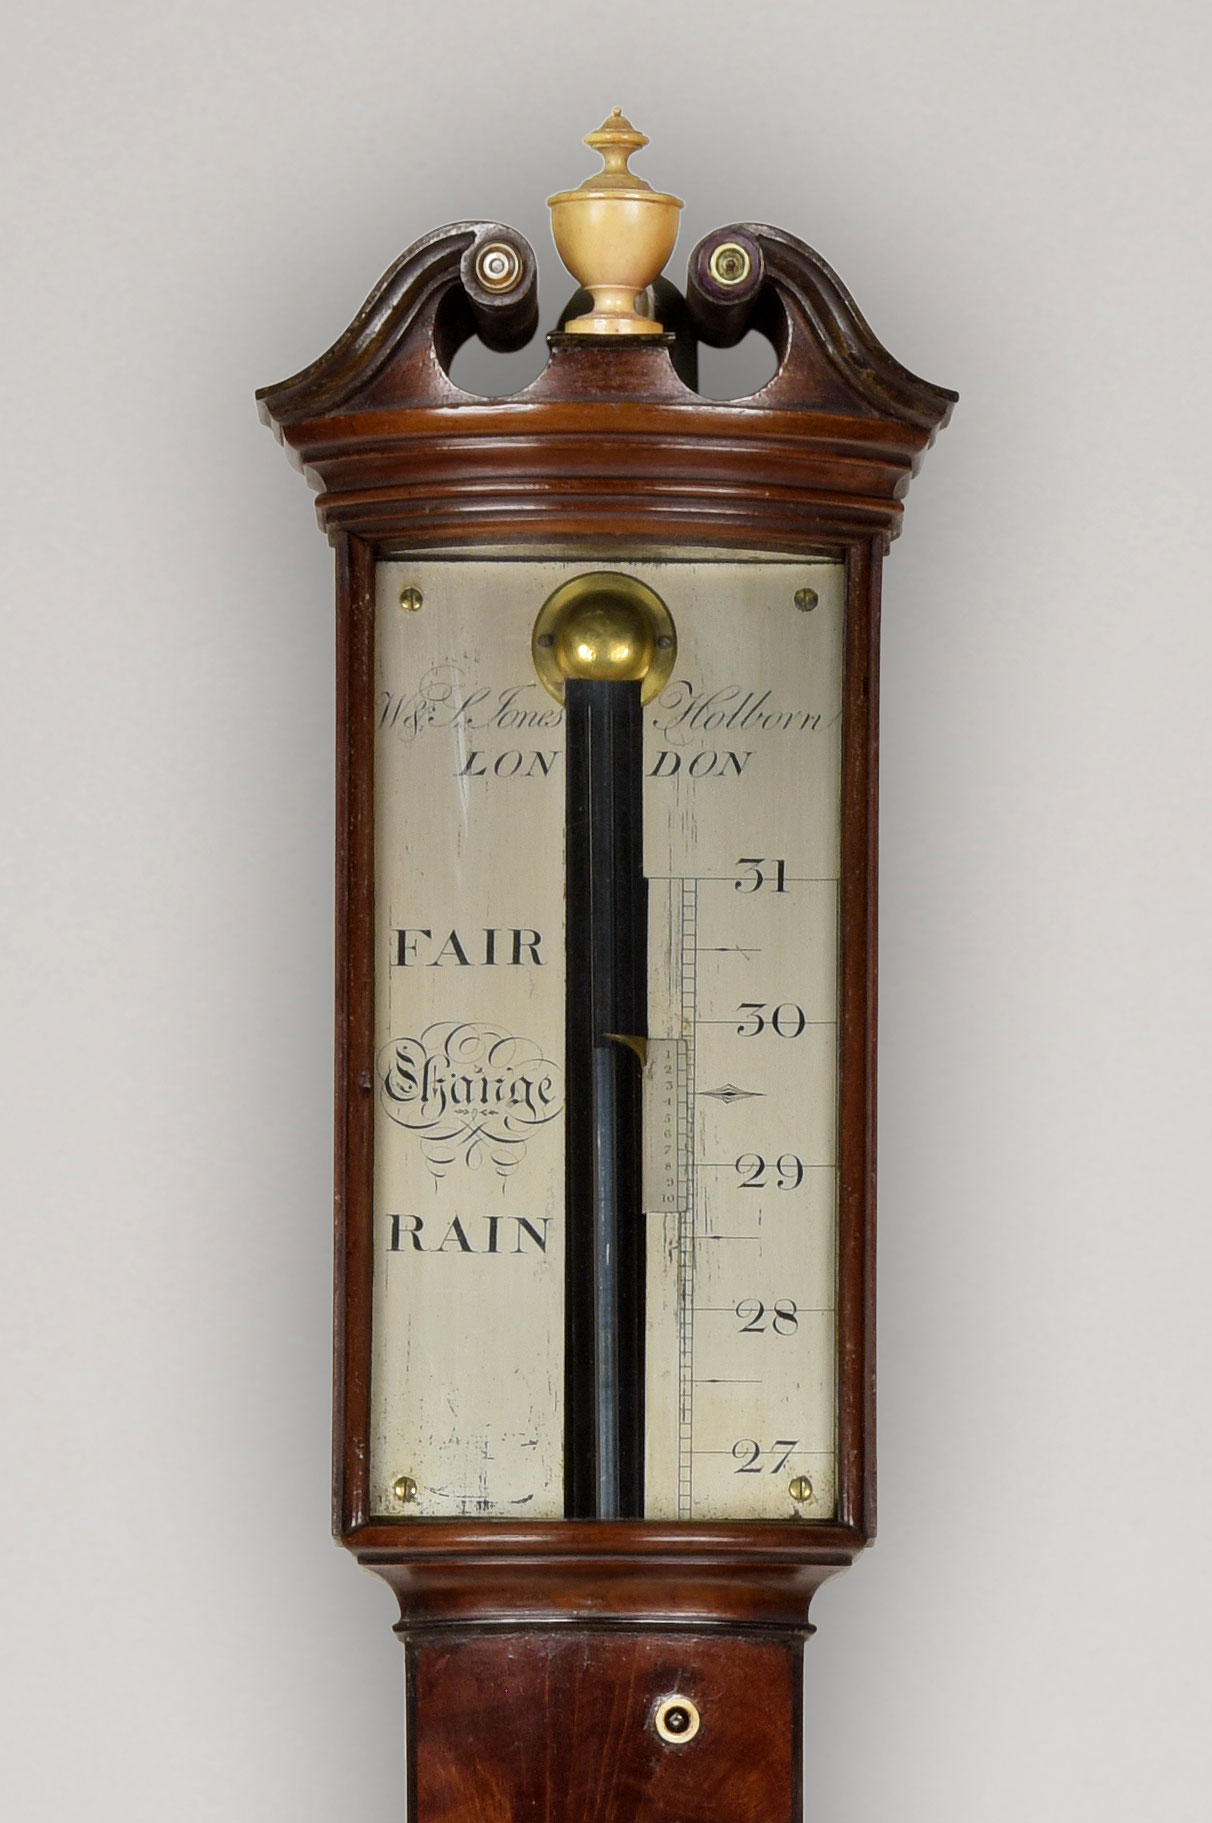 W & S JONES, HOLBORN. A fine George III bow front stick barometer